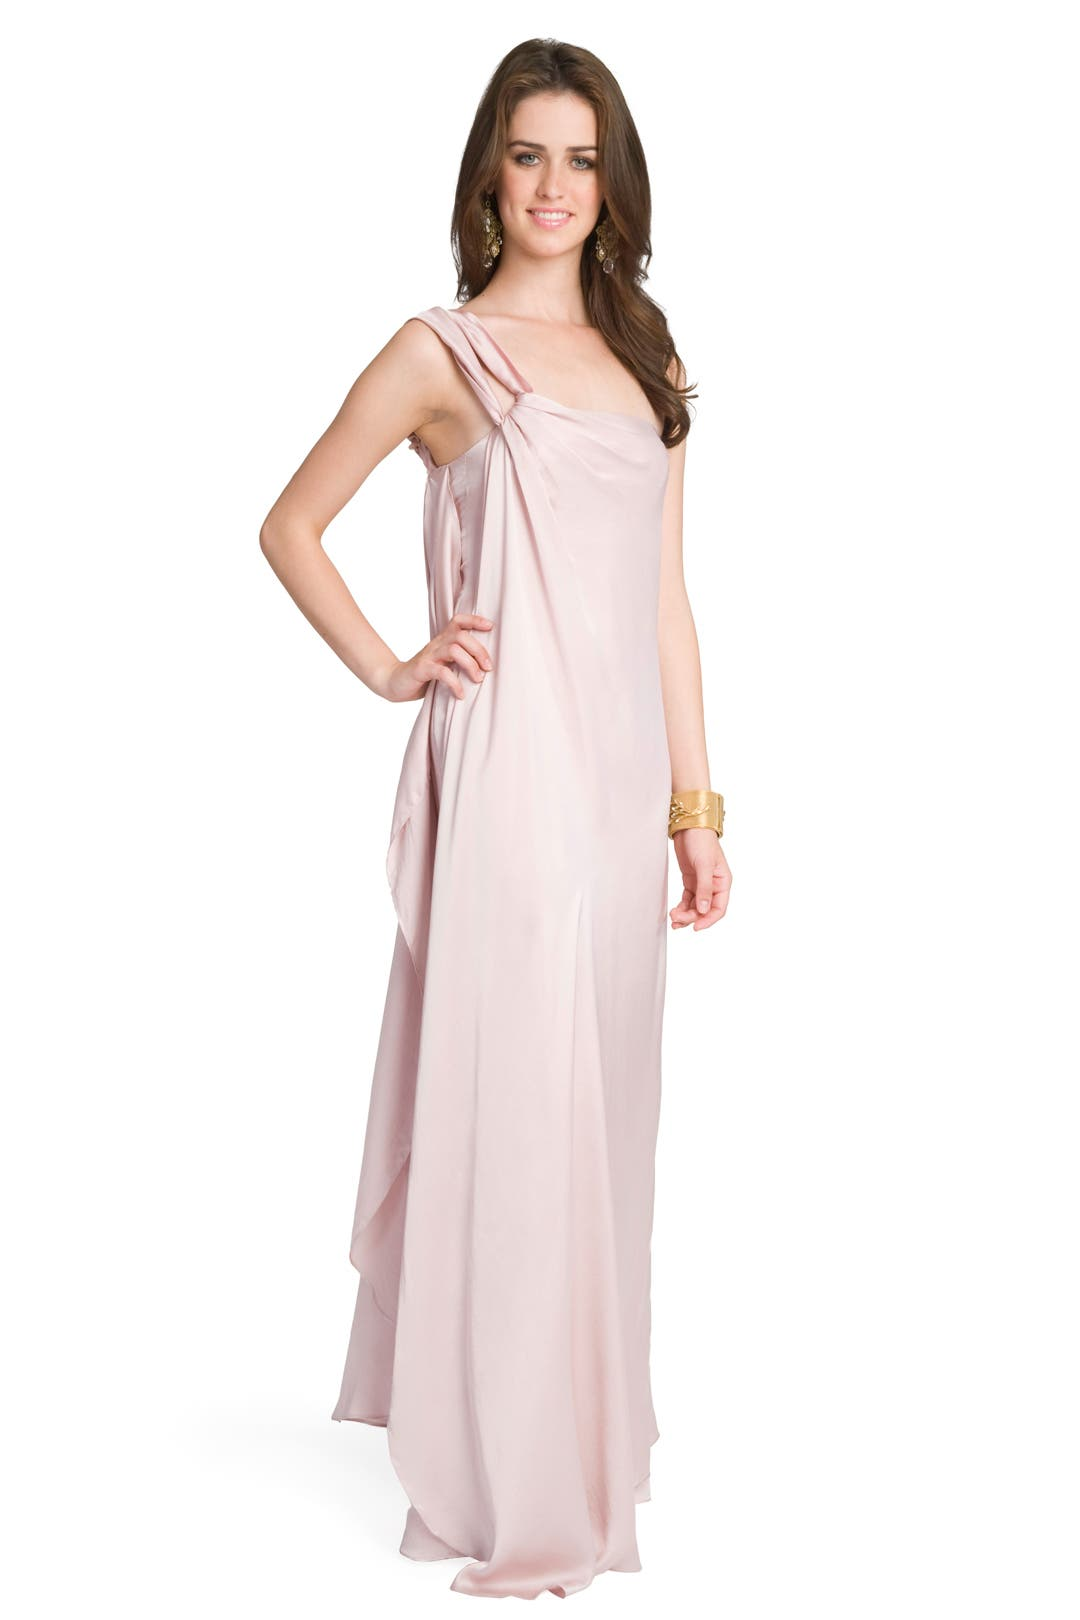 Romantic Rose Grecian Gown by Temperley London